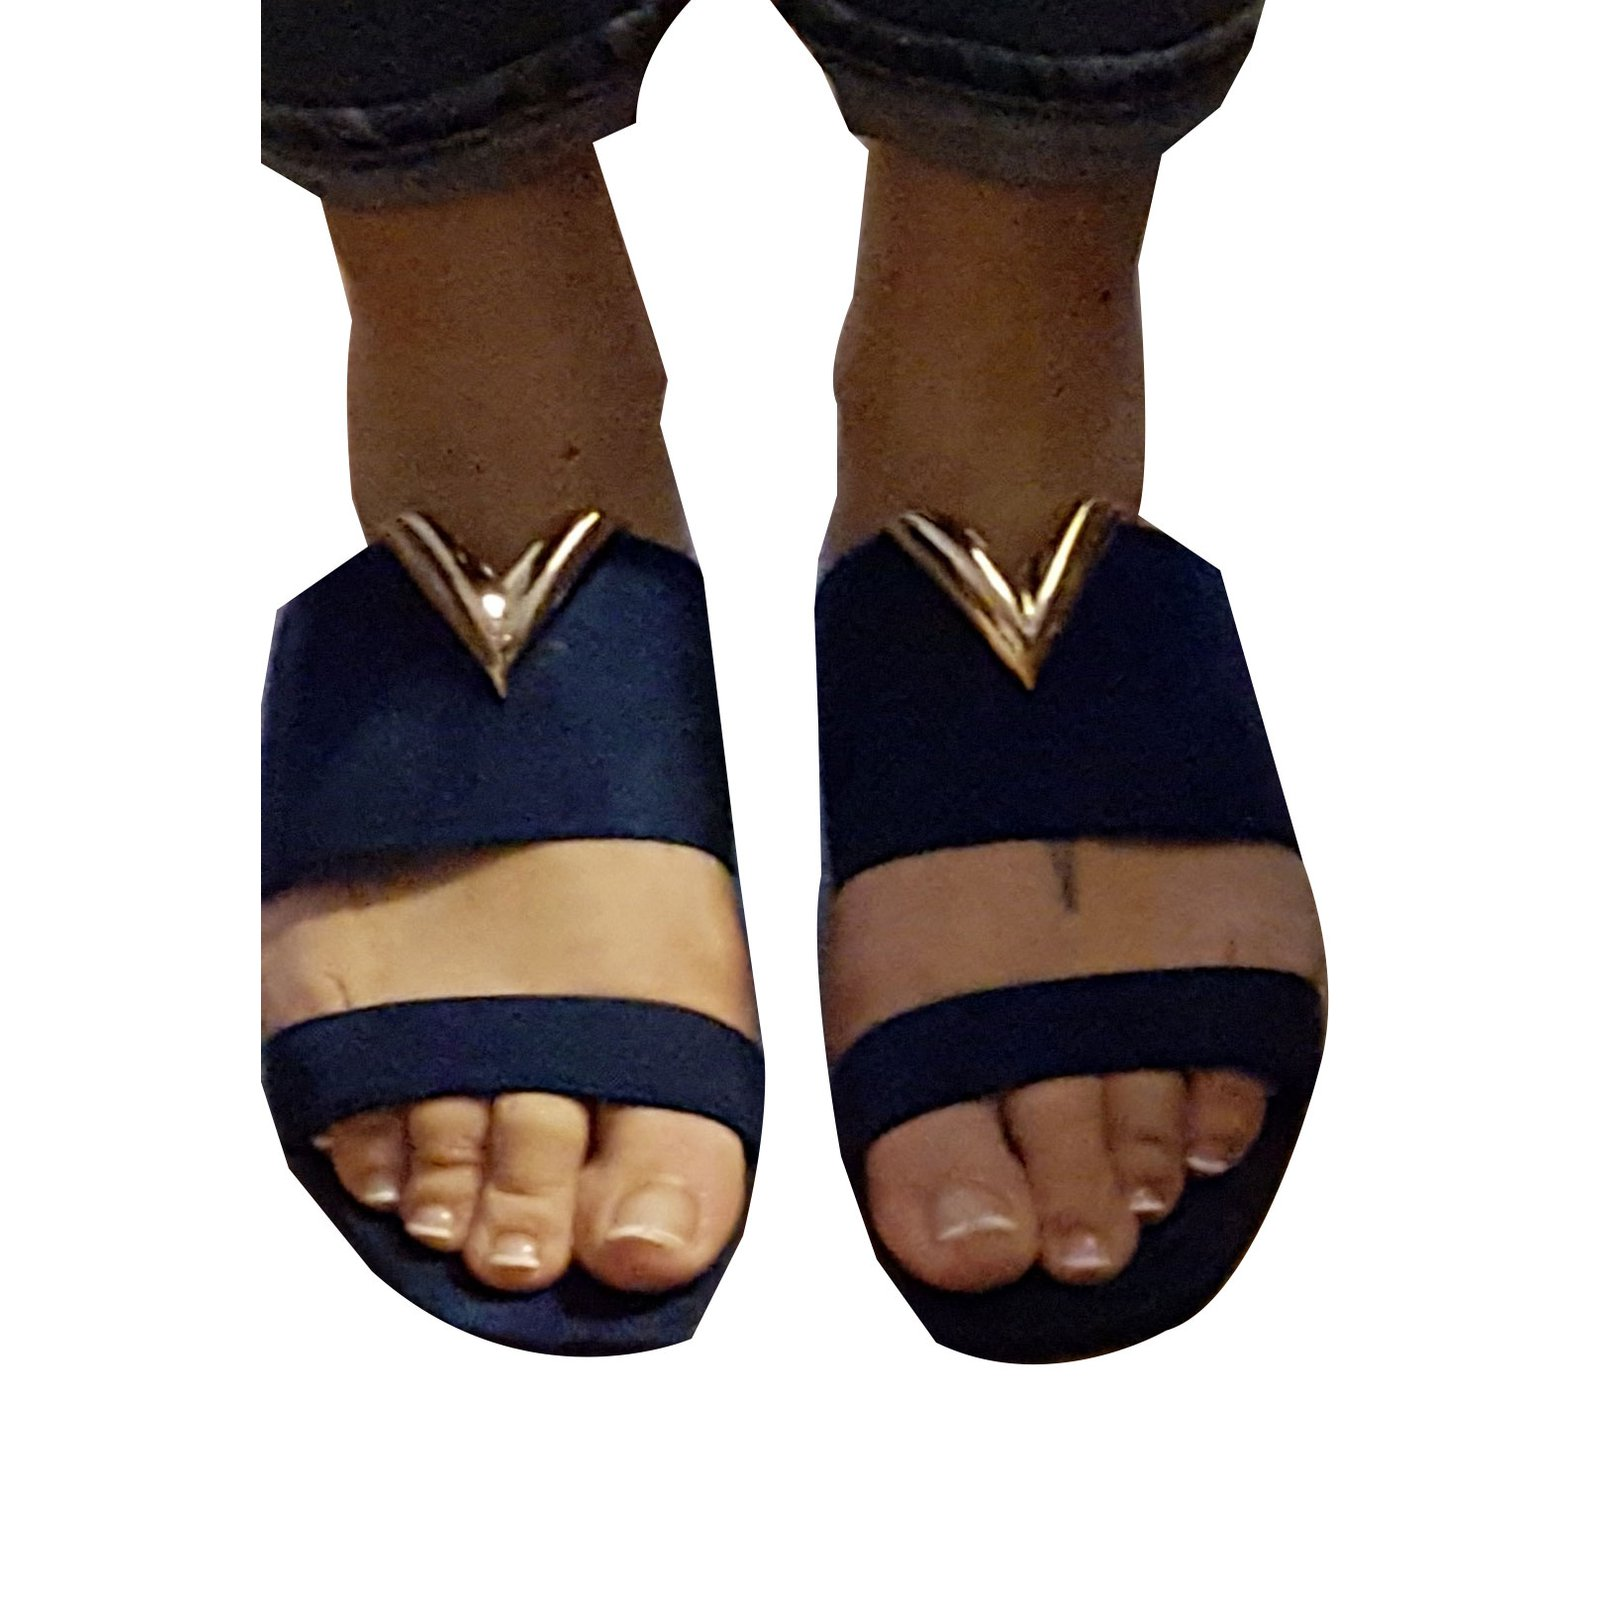 10c77233db98 Facebook · Pin This. Louis Vuitton Sandals Sandals Deerskin Navy blue ...